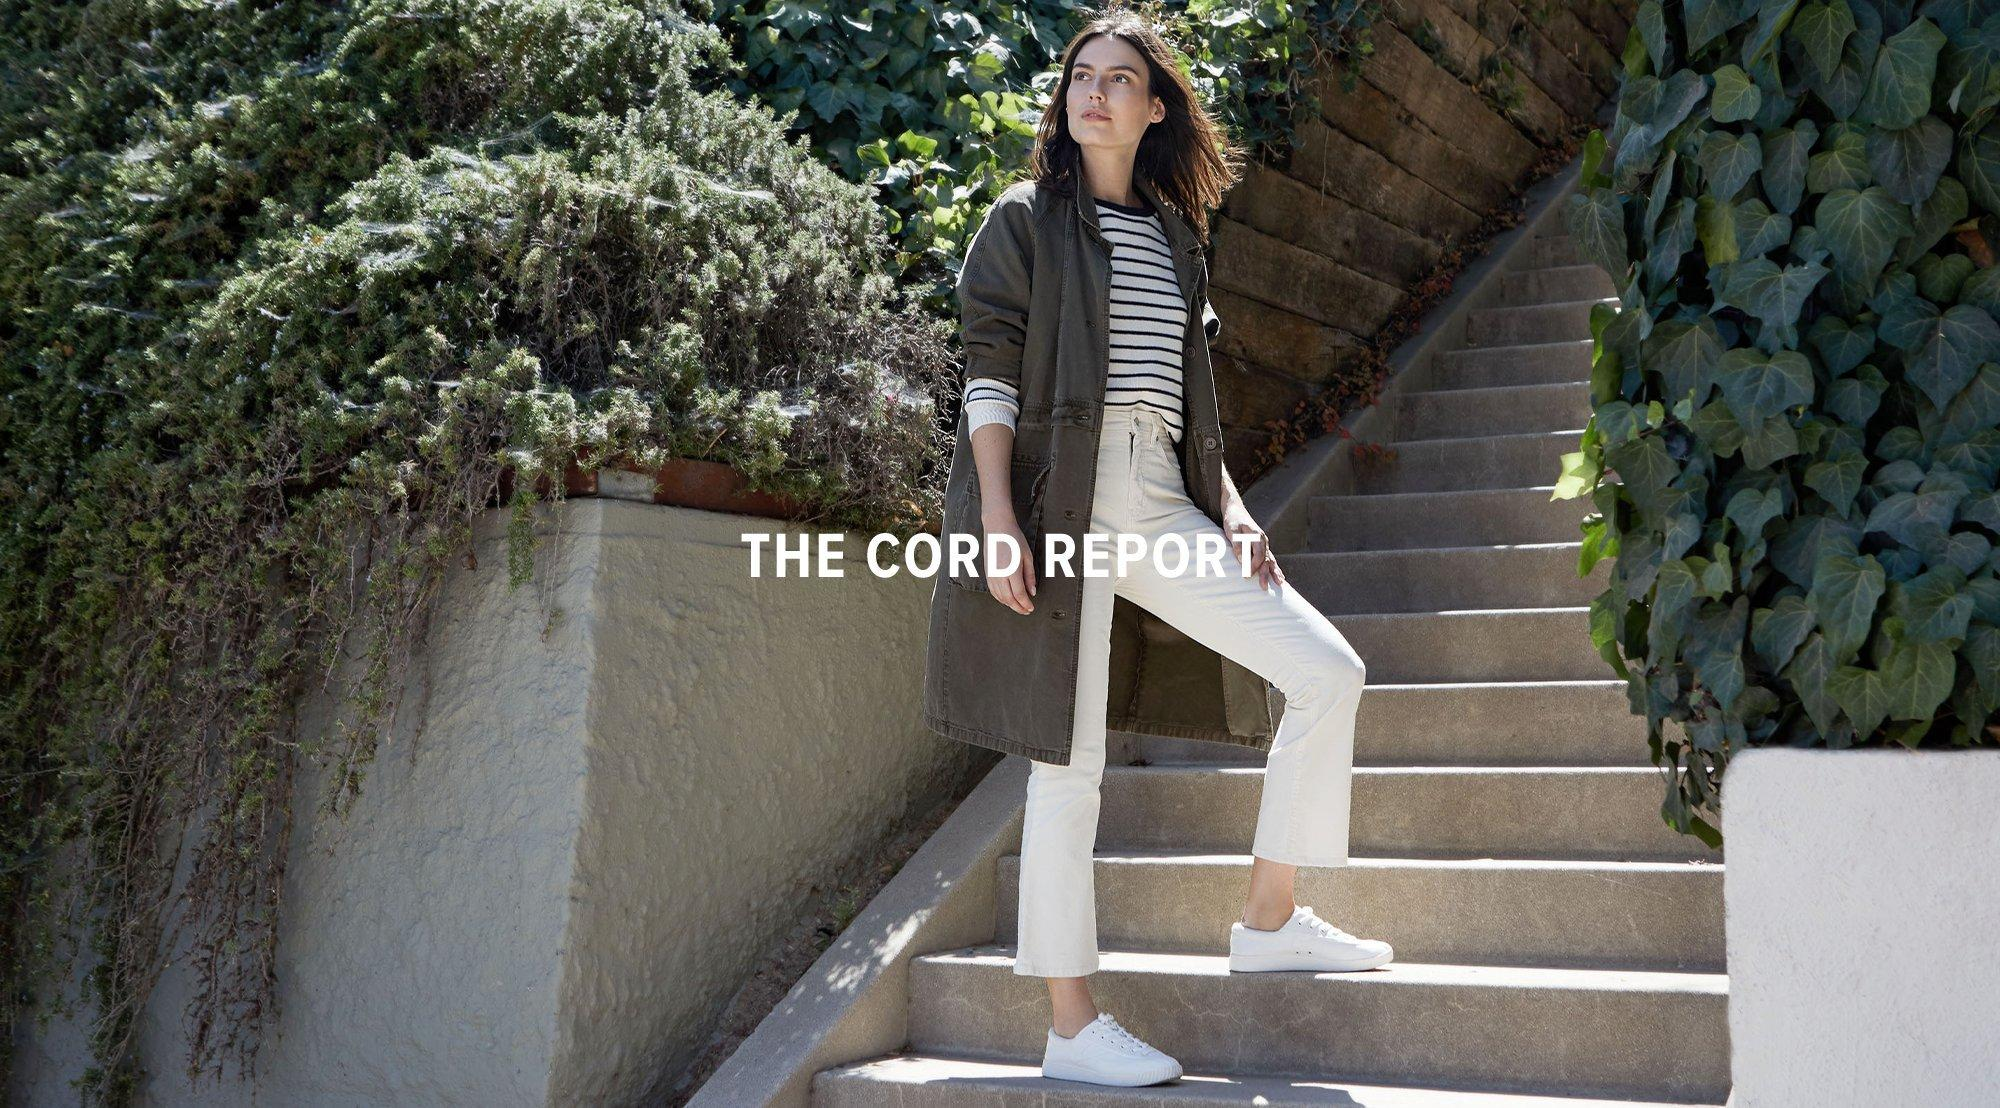 the cord report